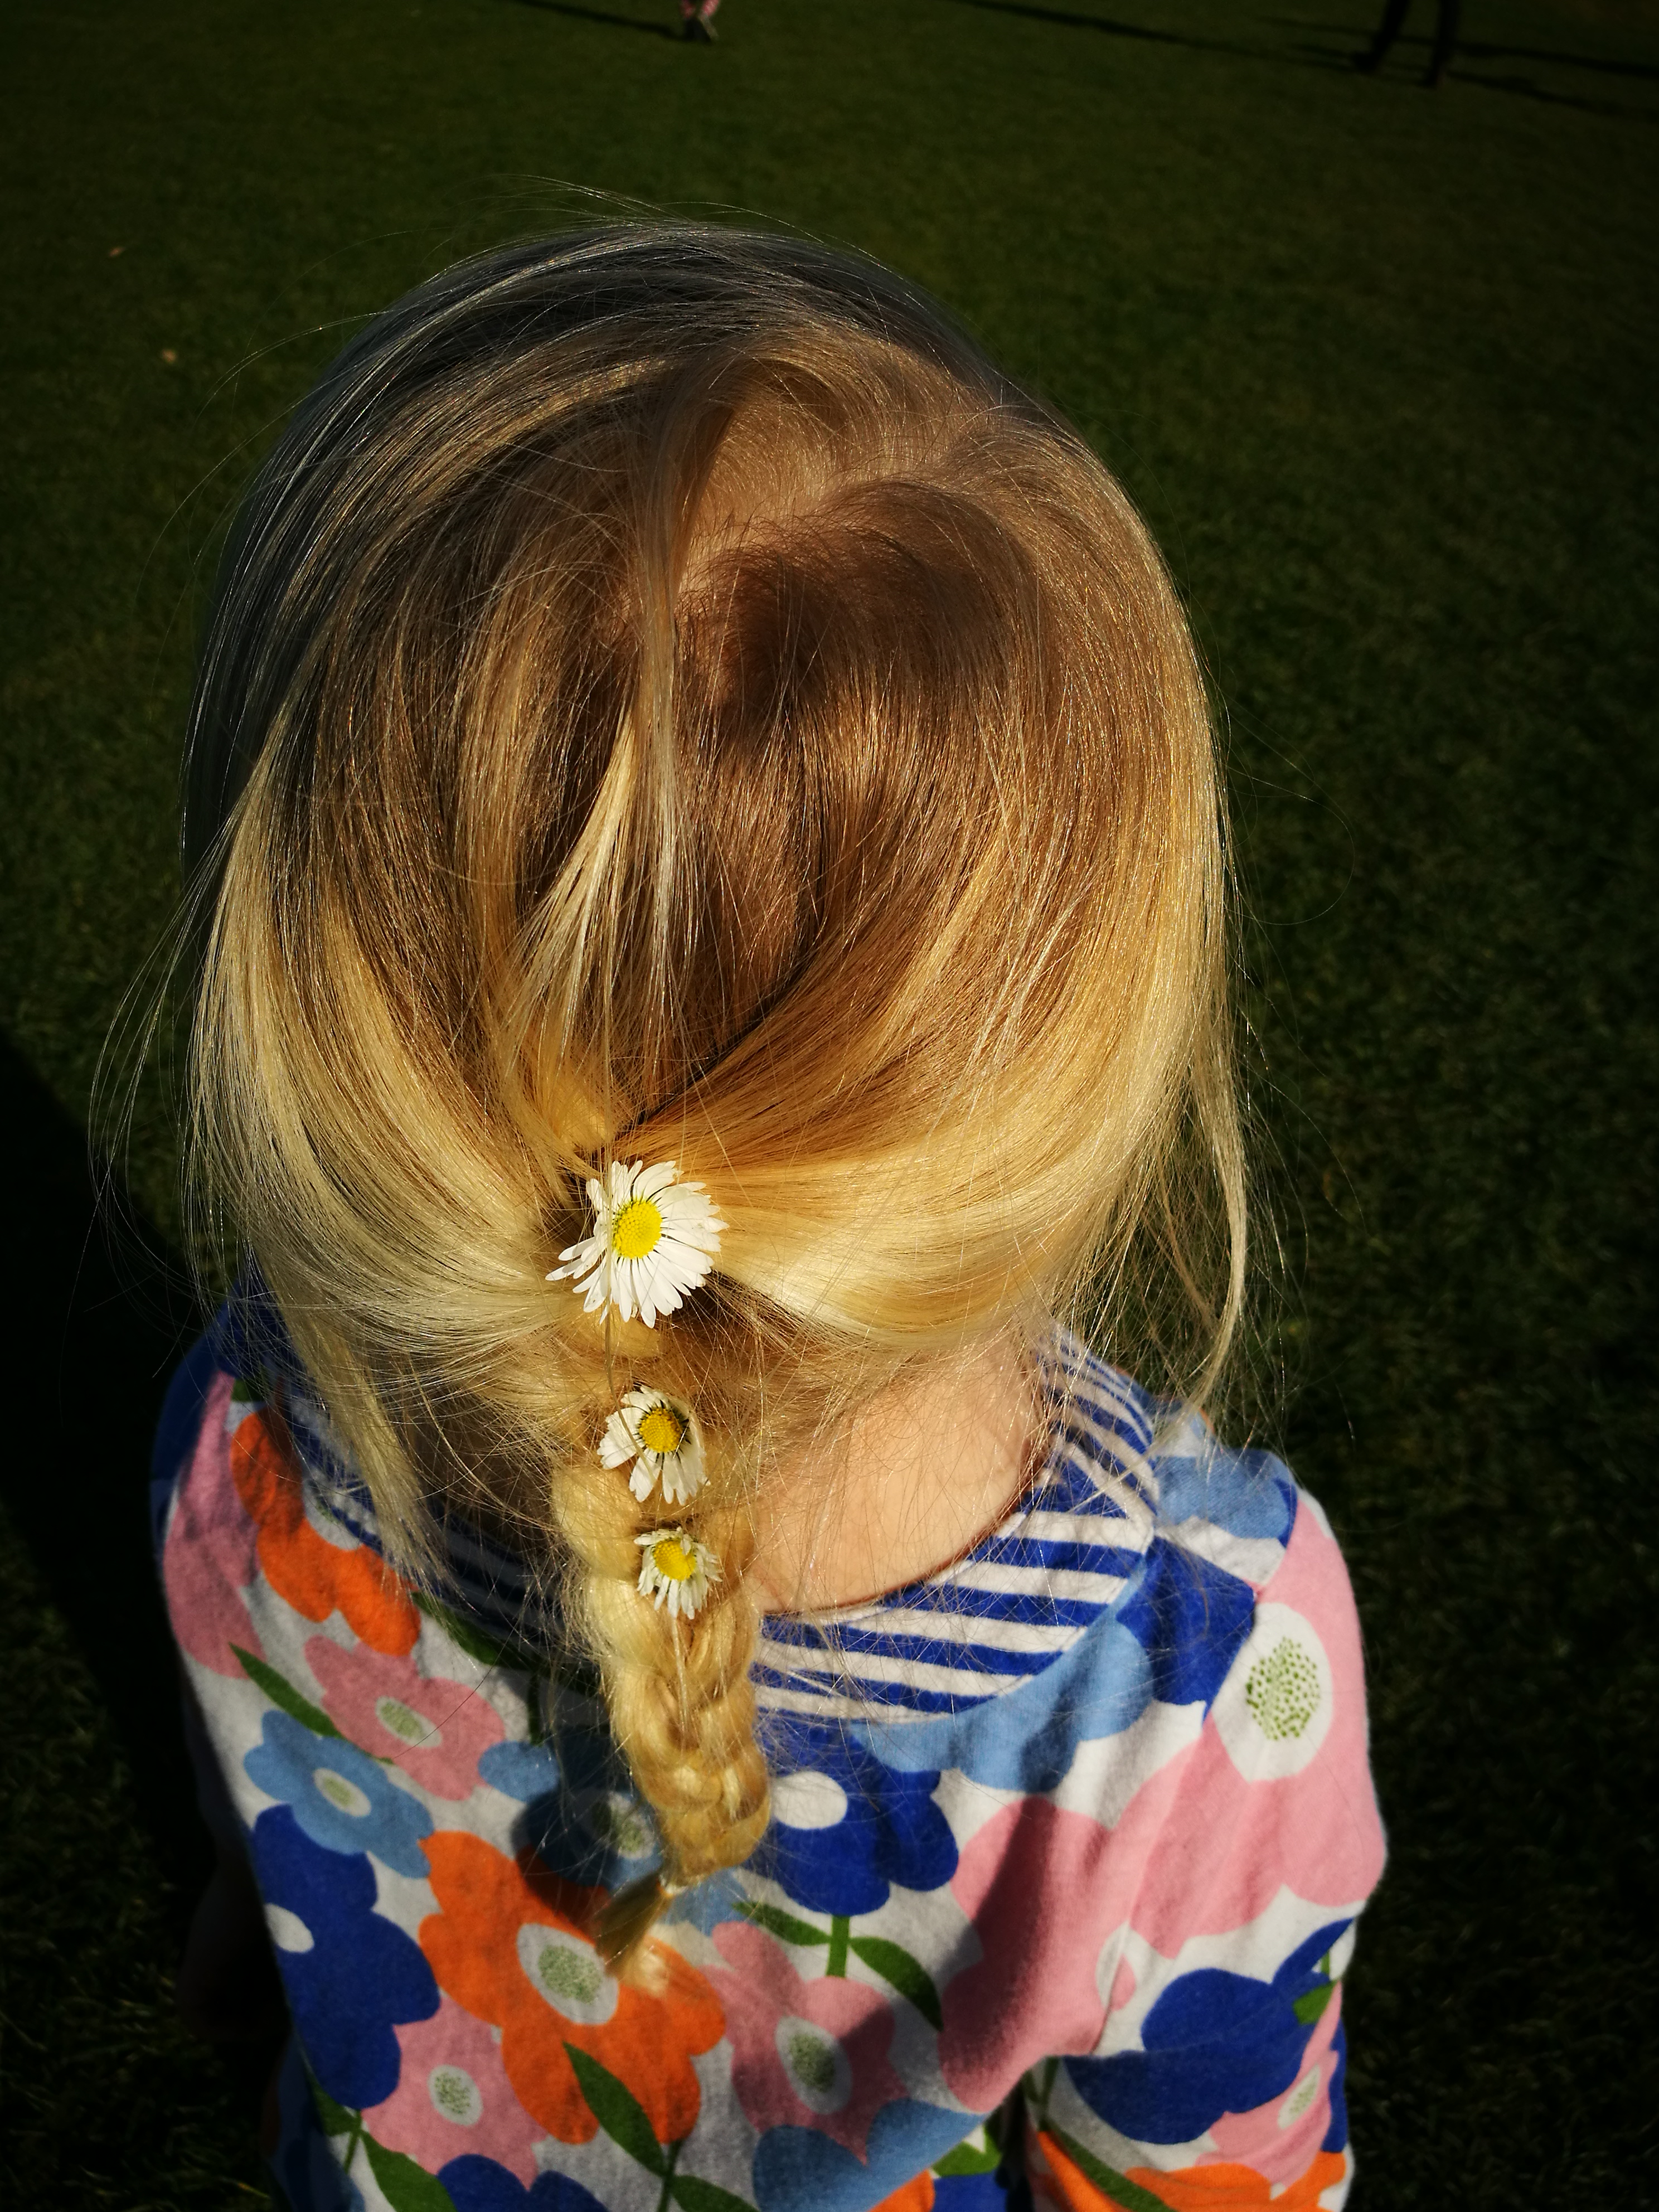 My daughter's hair in a french braid with small daisies woven in throughout.